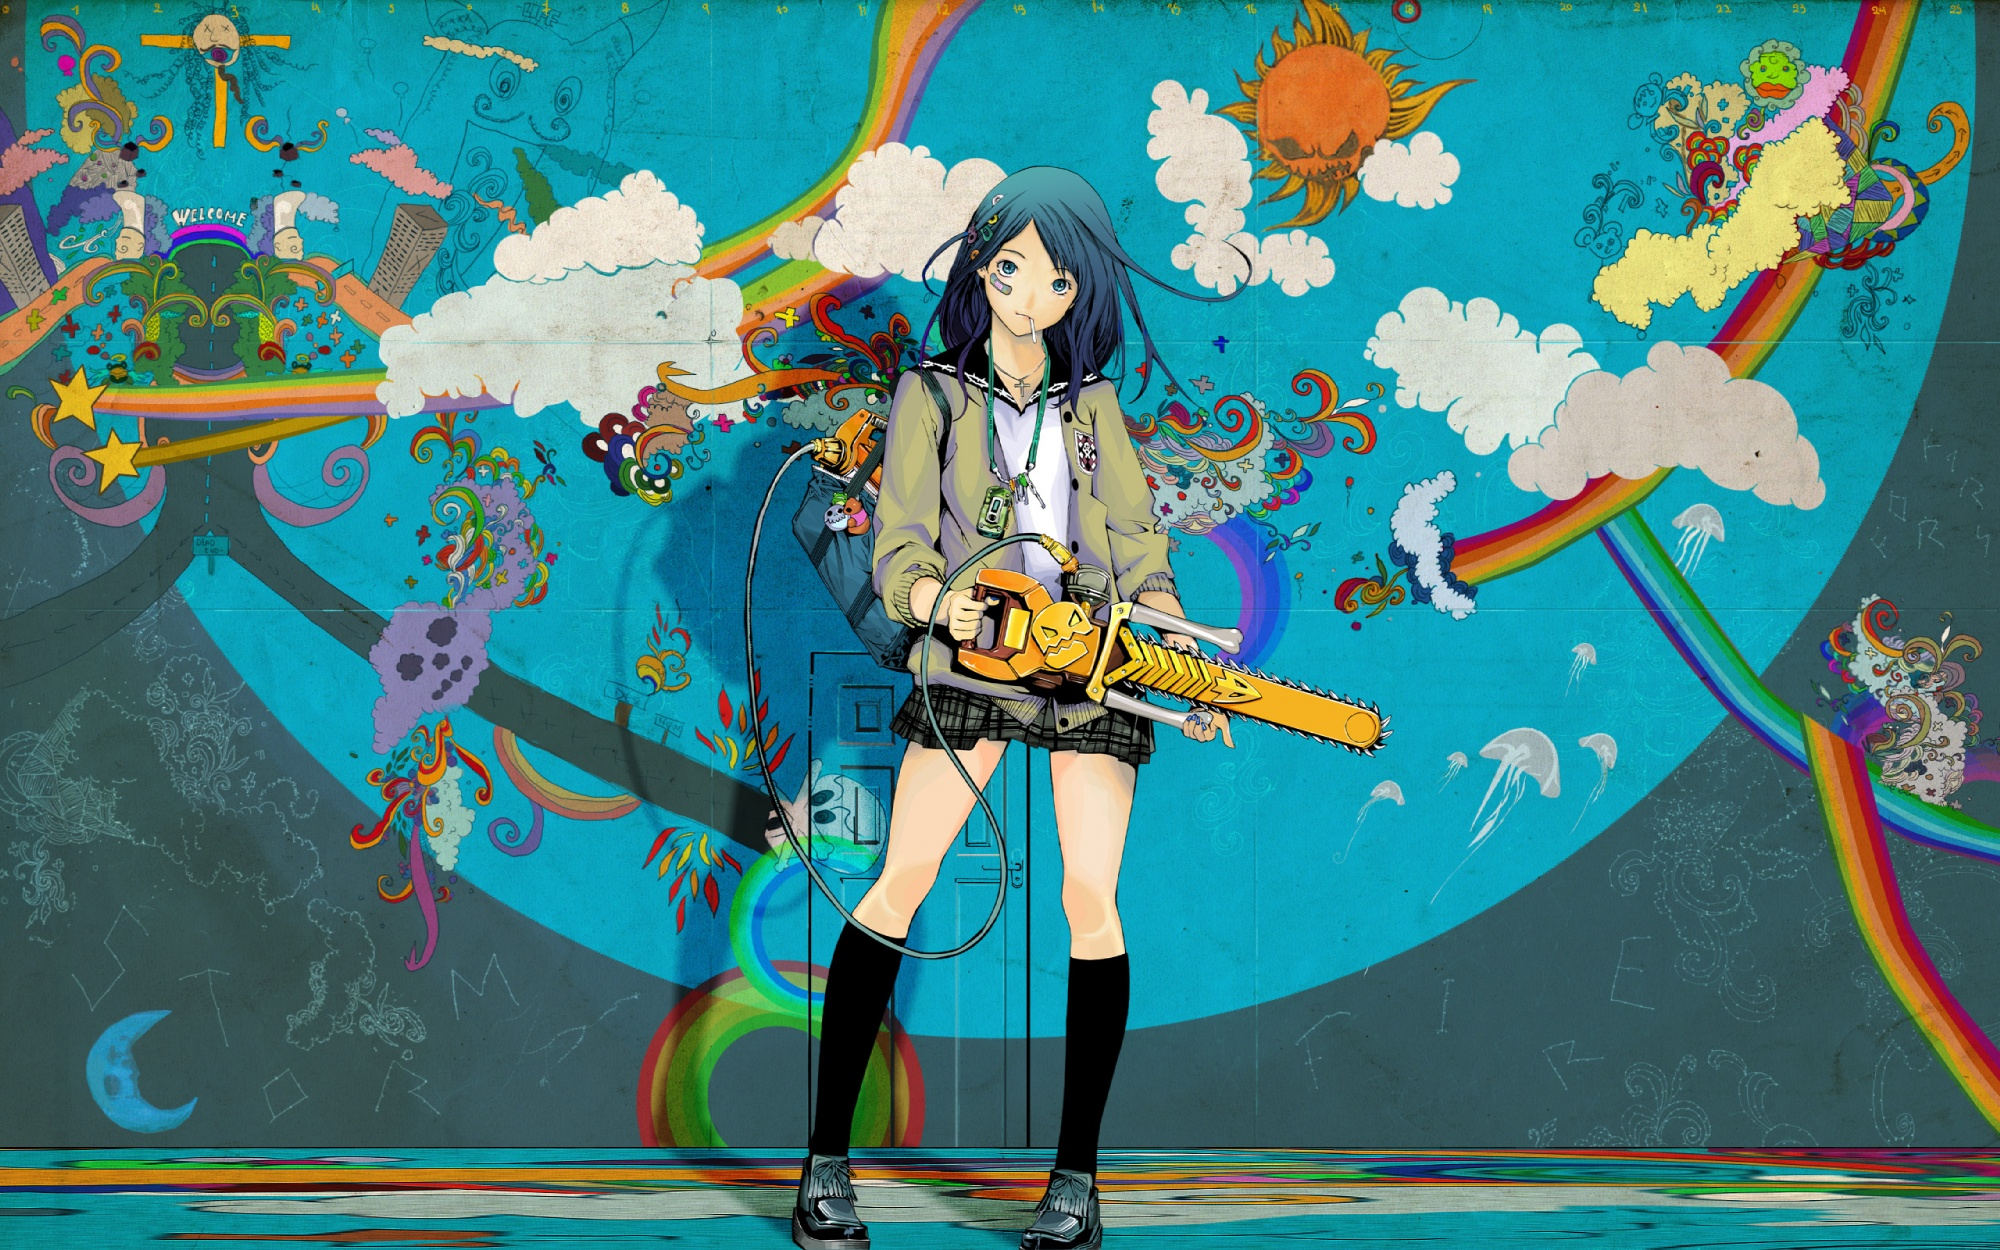 angel animal bandaid bear blue_eyes blue_hair candy chainsaw clouds cross frog graffiti halo kneehighs lollipop long_hair moon necklace oh_great phone rainbow skirt skull stars stockings weapon wings